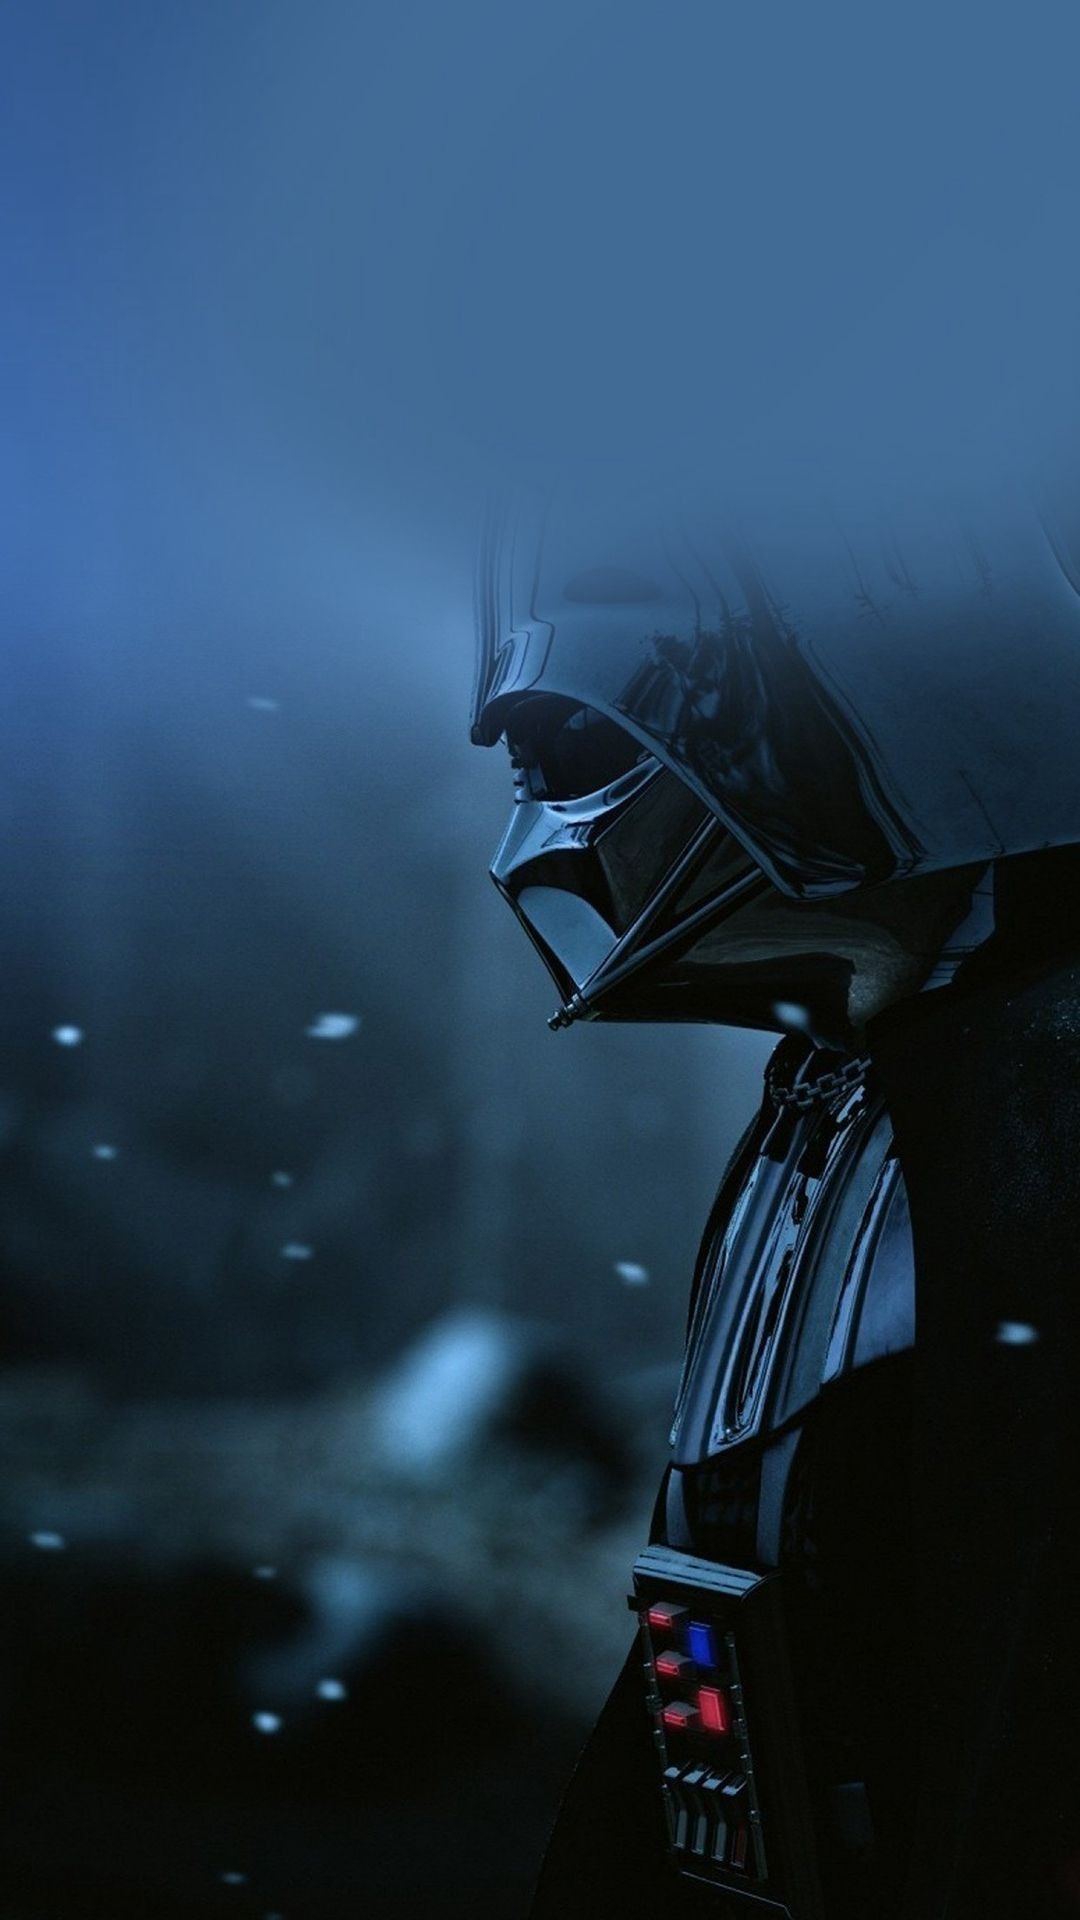 Starwars Darth Vader Art Film Blue Iphone 6 Wallpaper Download Iphone Wallpapers Ipad W Star Wars Wallpaper Iphone Star Wars Wallpaper Darth Vader Wallpaper